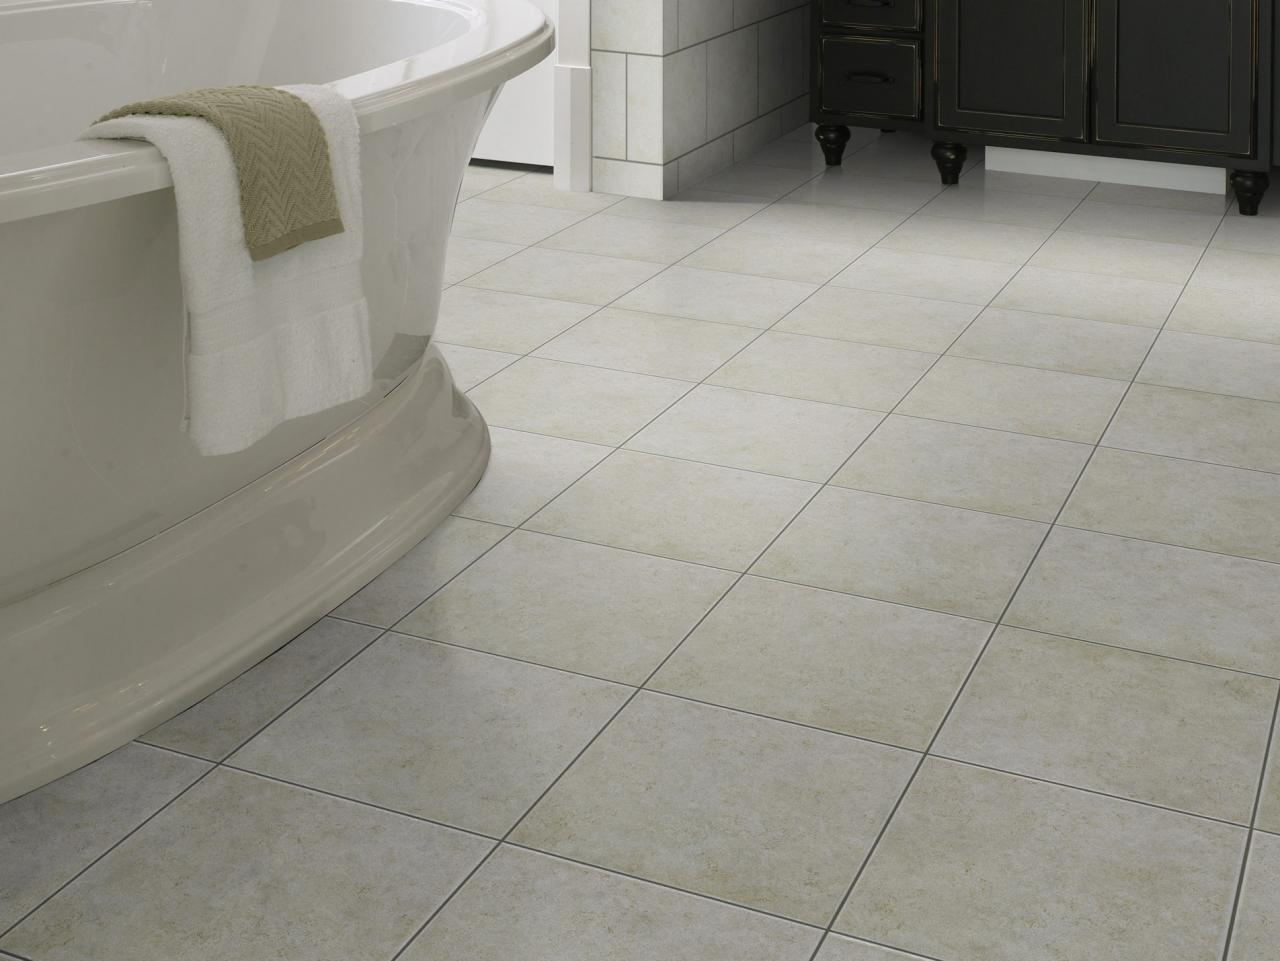 Tips for choosing ceramic tile flooring